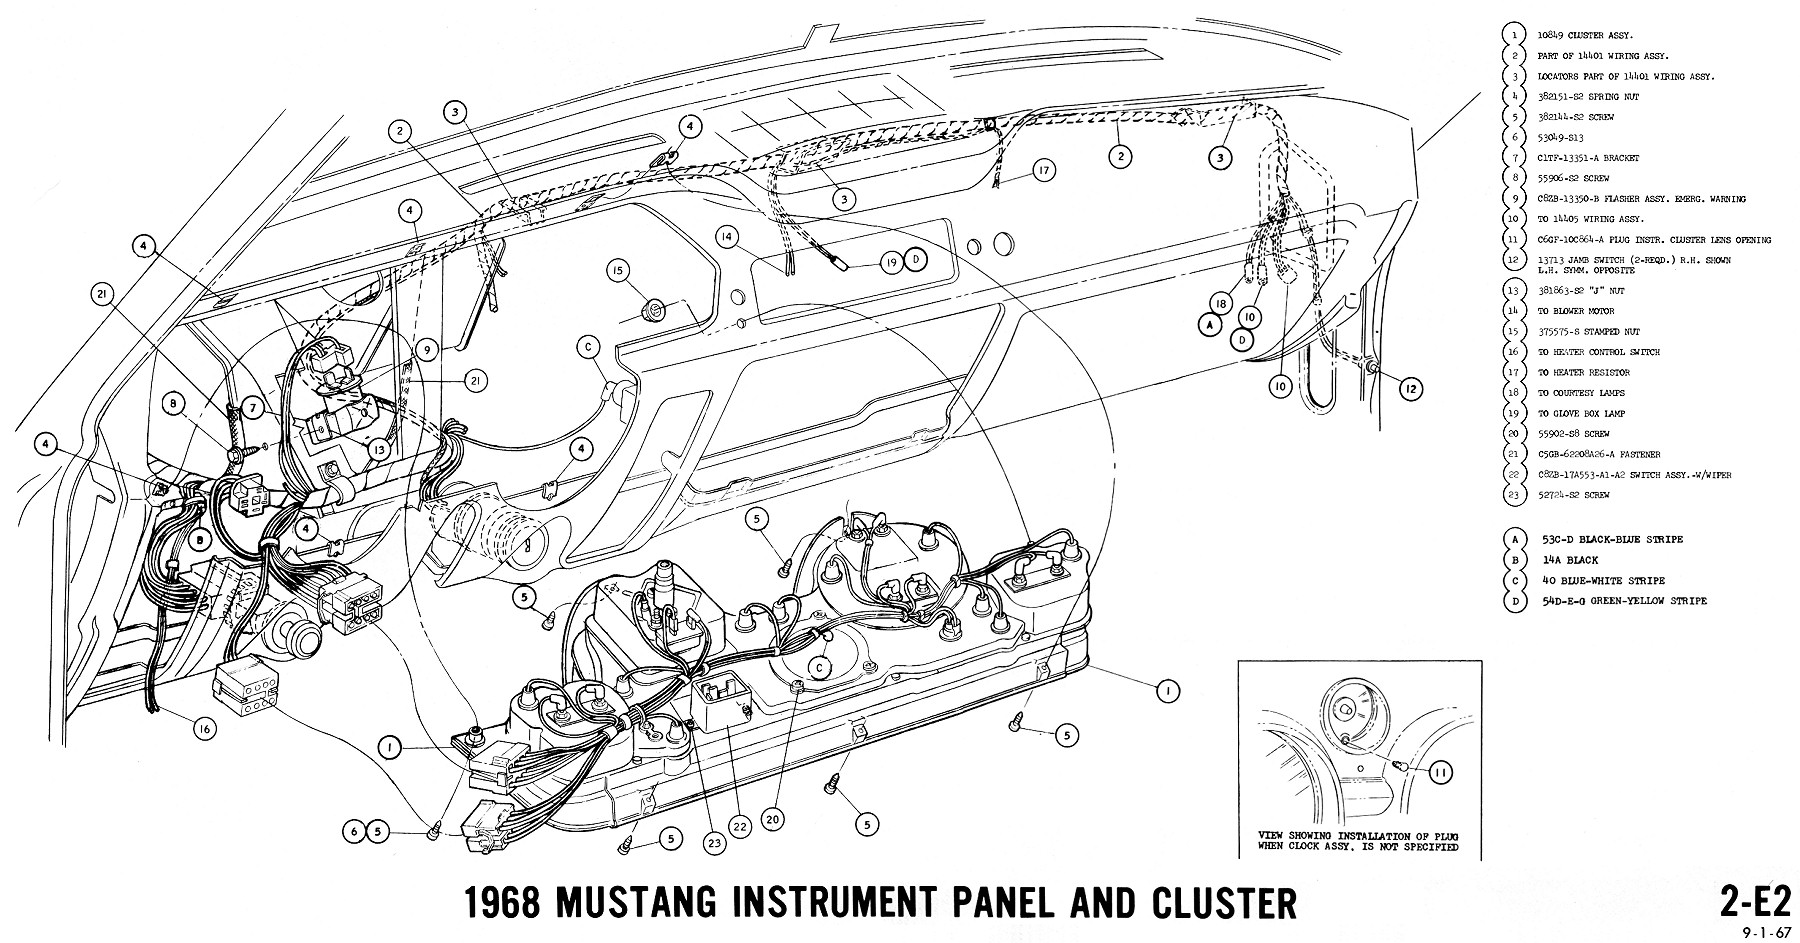 1968 mustang wiring diagram instruments 2 1969 mustang dash wiring diagram 1969 mustang wiring routing 2005 ford mustang instrument cluster wiring diagram at readyjetset.co